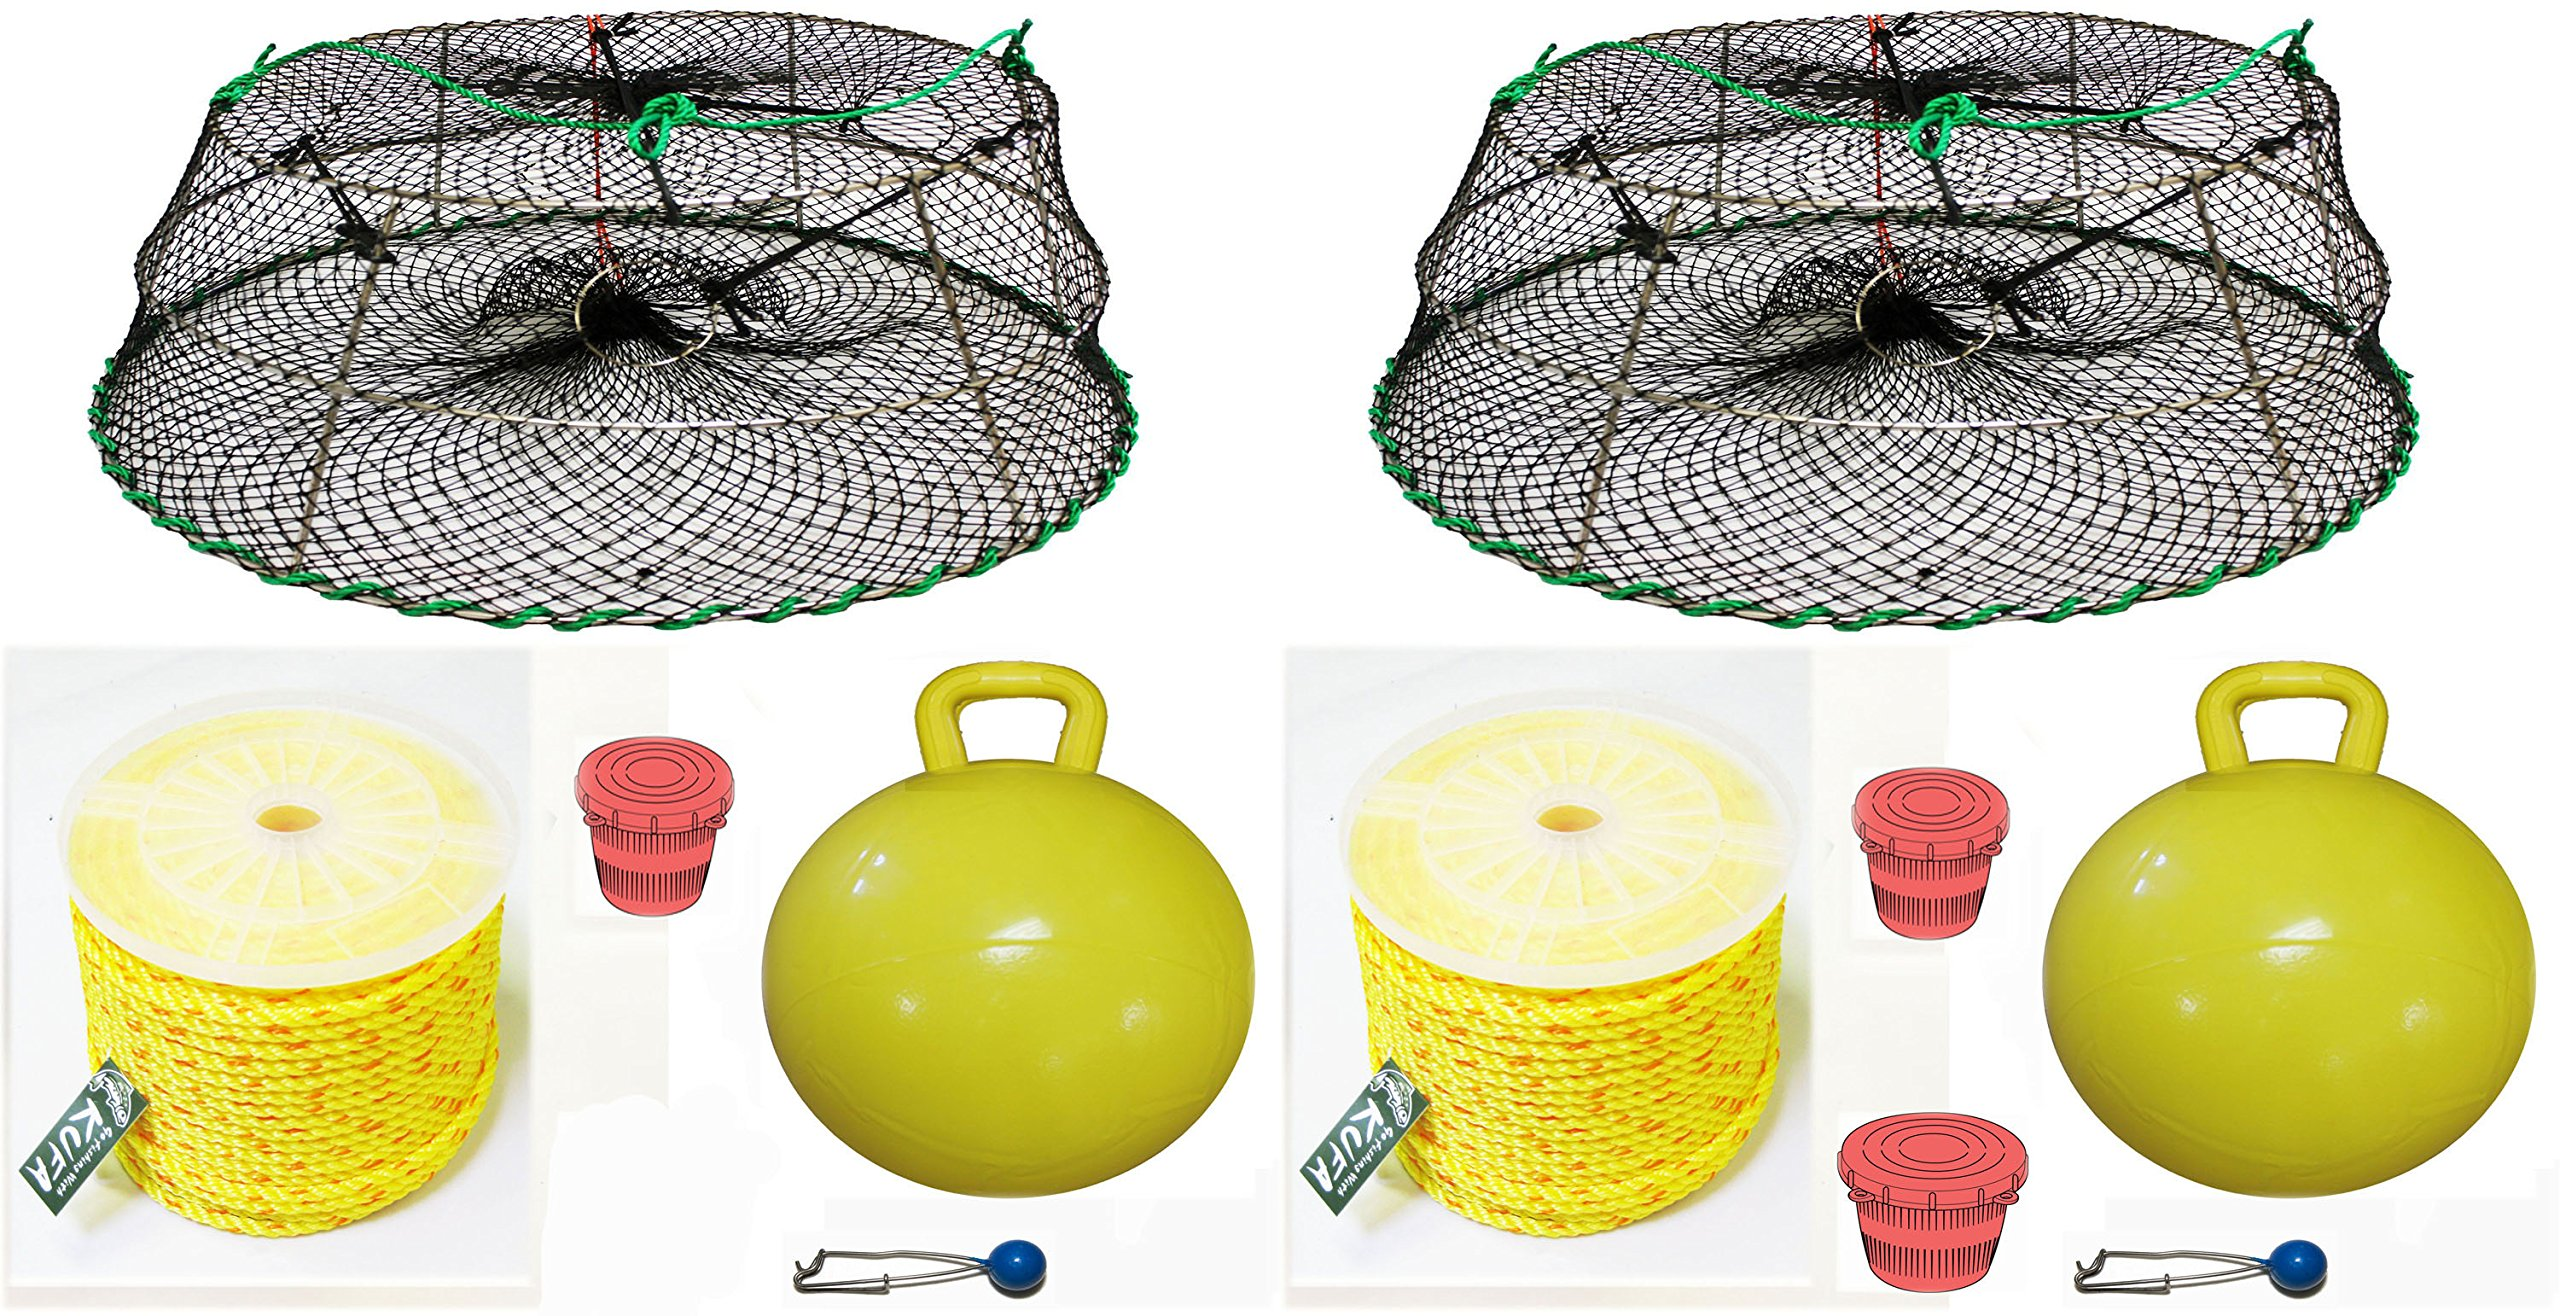 2-Pack of KUFA Sports Tower Style Prawn trap with 400' rope, Yellow float and Vented Bait Jar combo (CT77+PAP5)X2